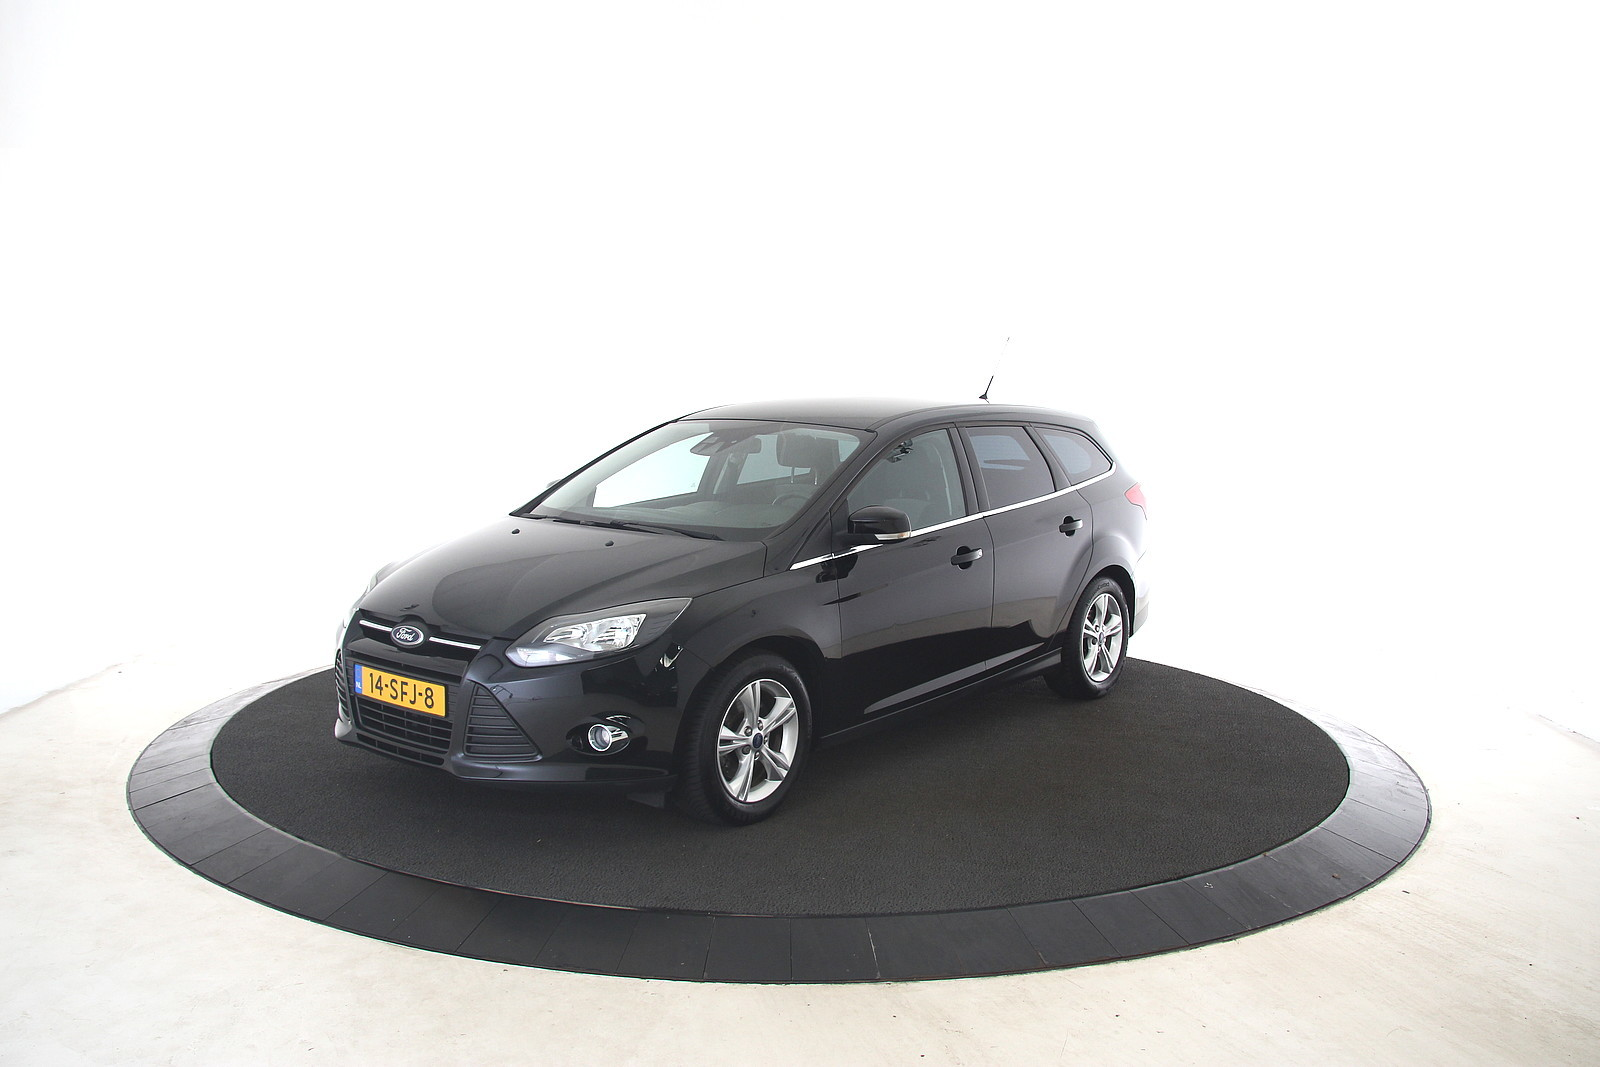 Ford Focus Wagon | 1.6 EcoBoost | 150PK |